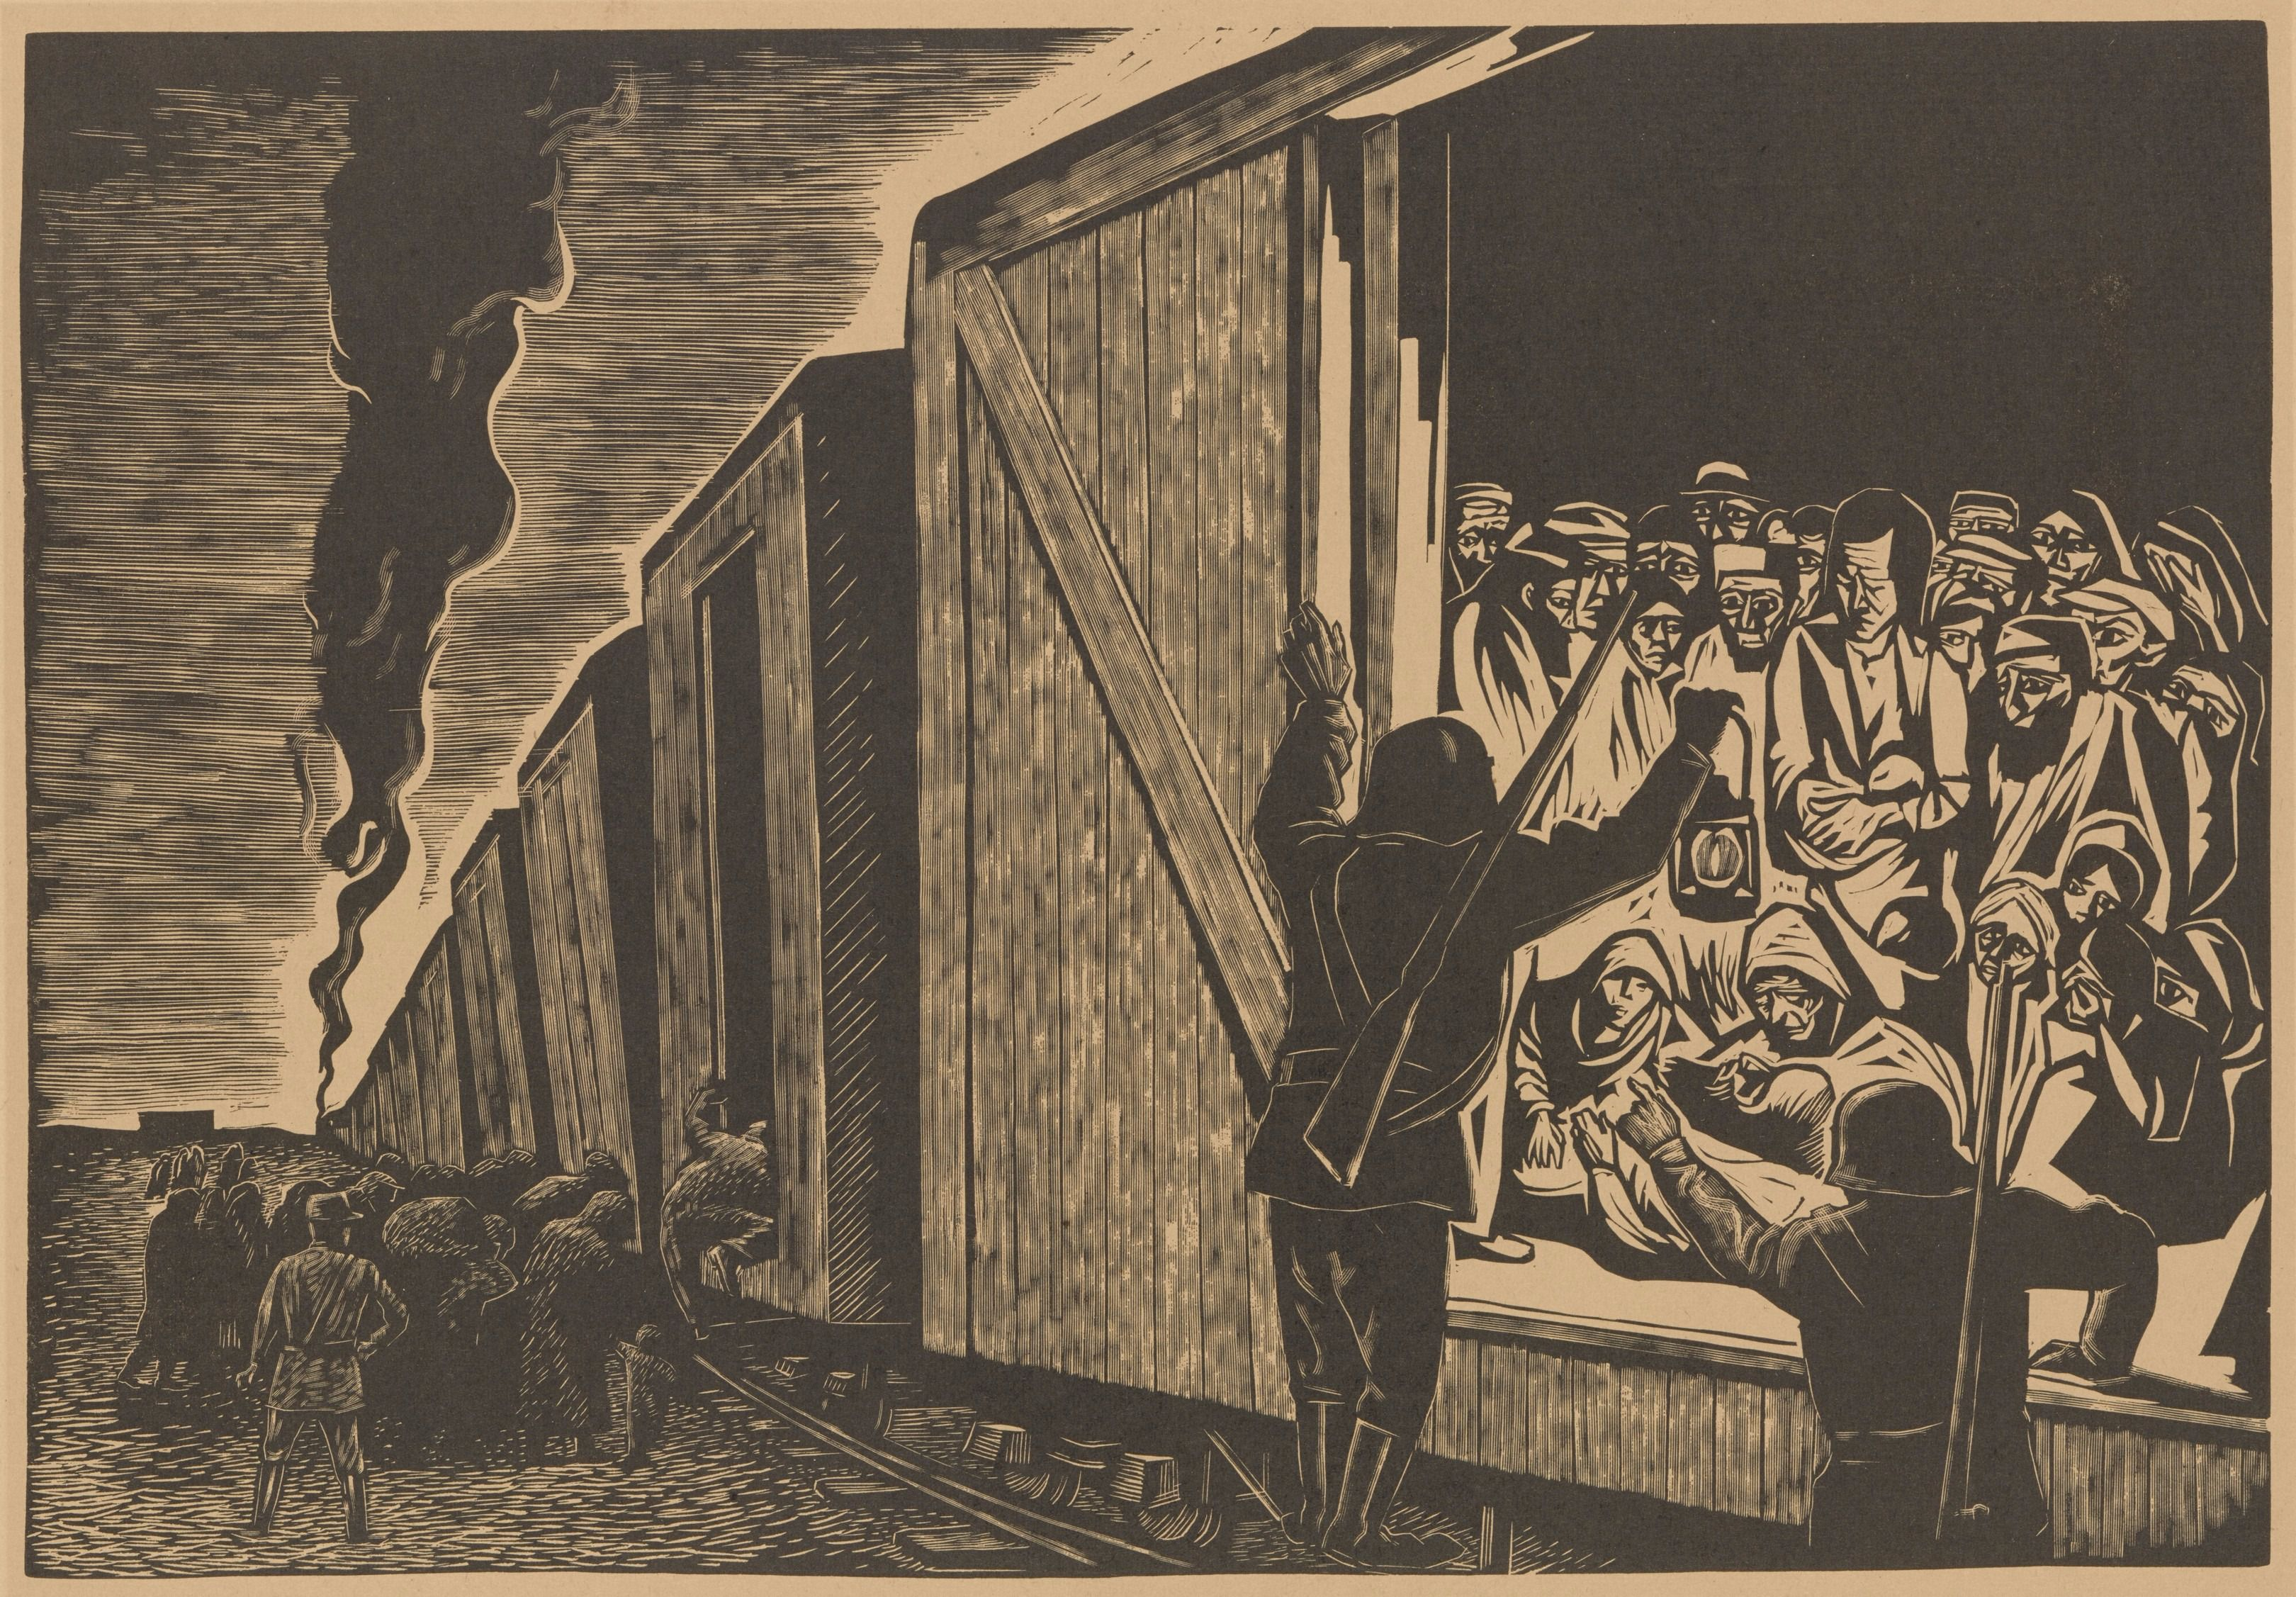 Deportation to Death, by Leopoldo Mendez